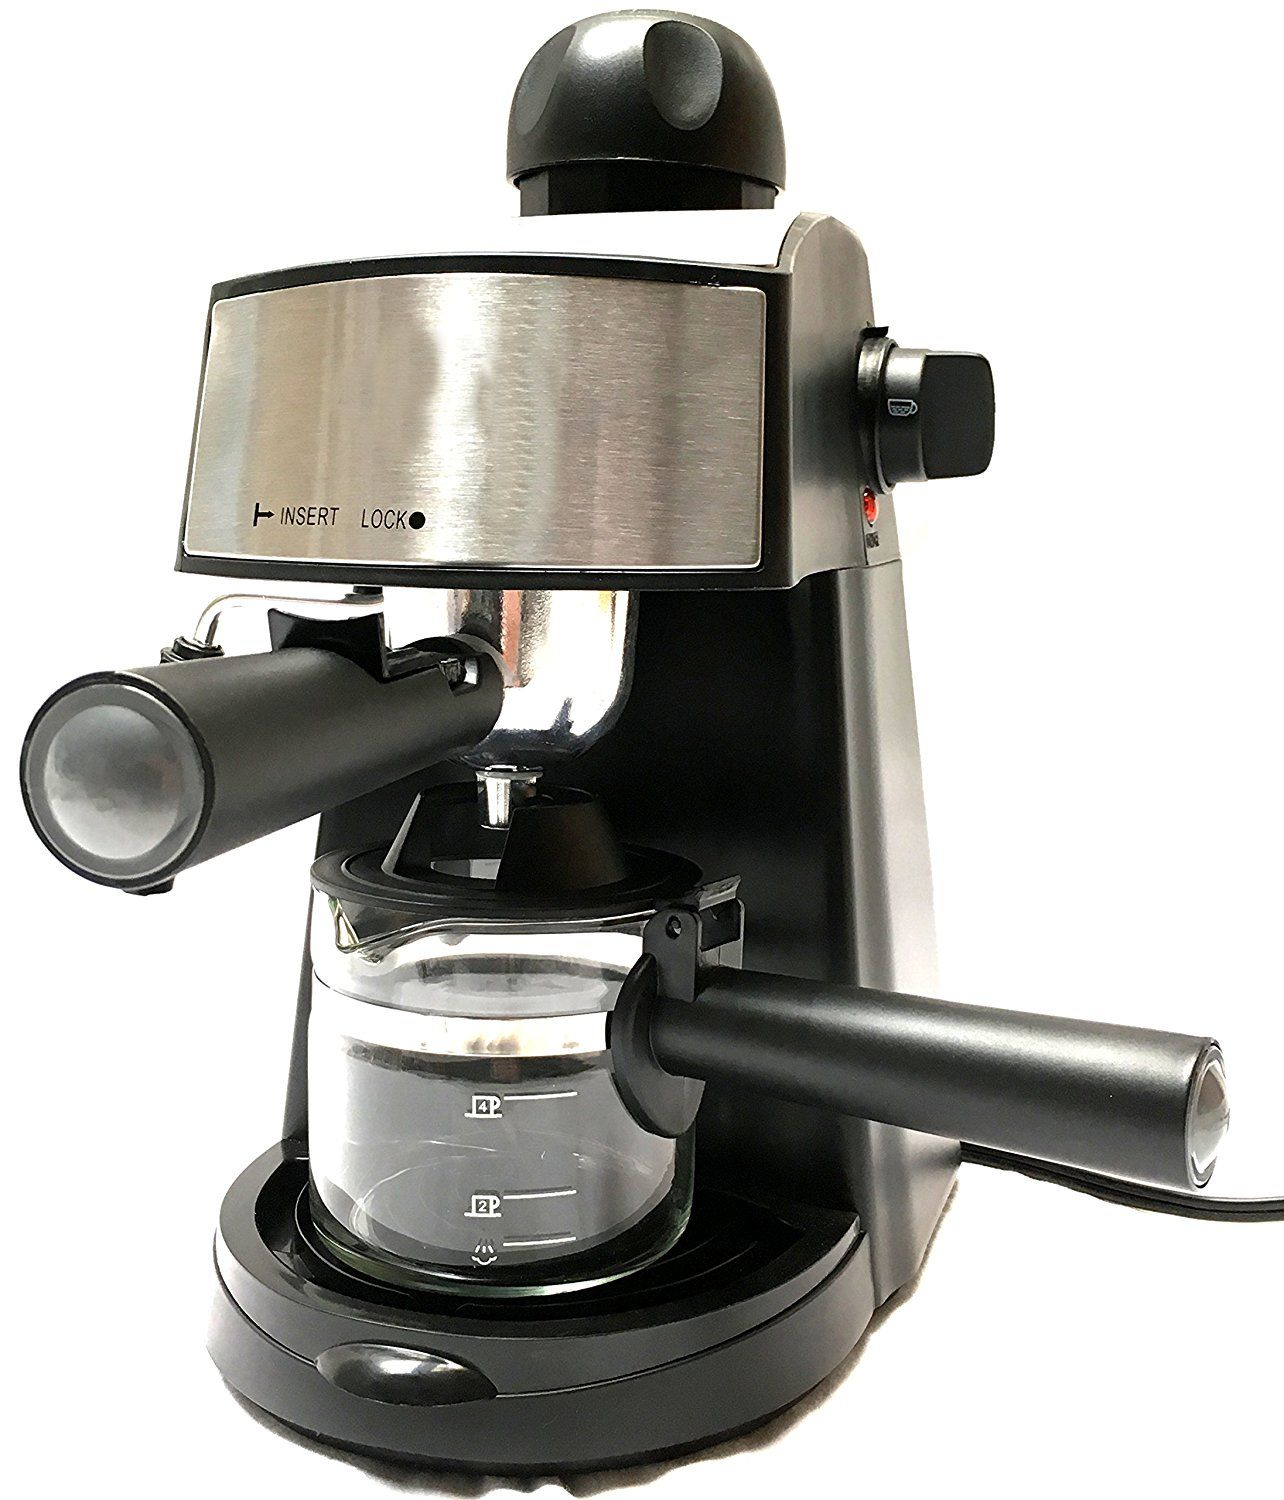 Espresso and Cappuccino Machine Coffee Hot Drinks Maker Cool-Touch Handle 20 oz